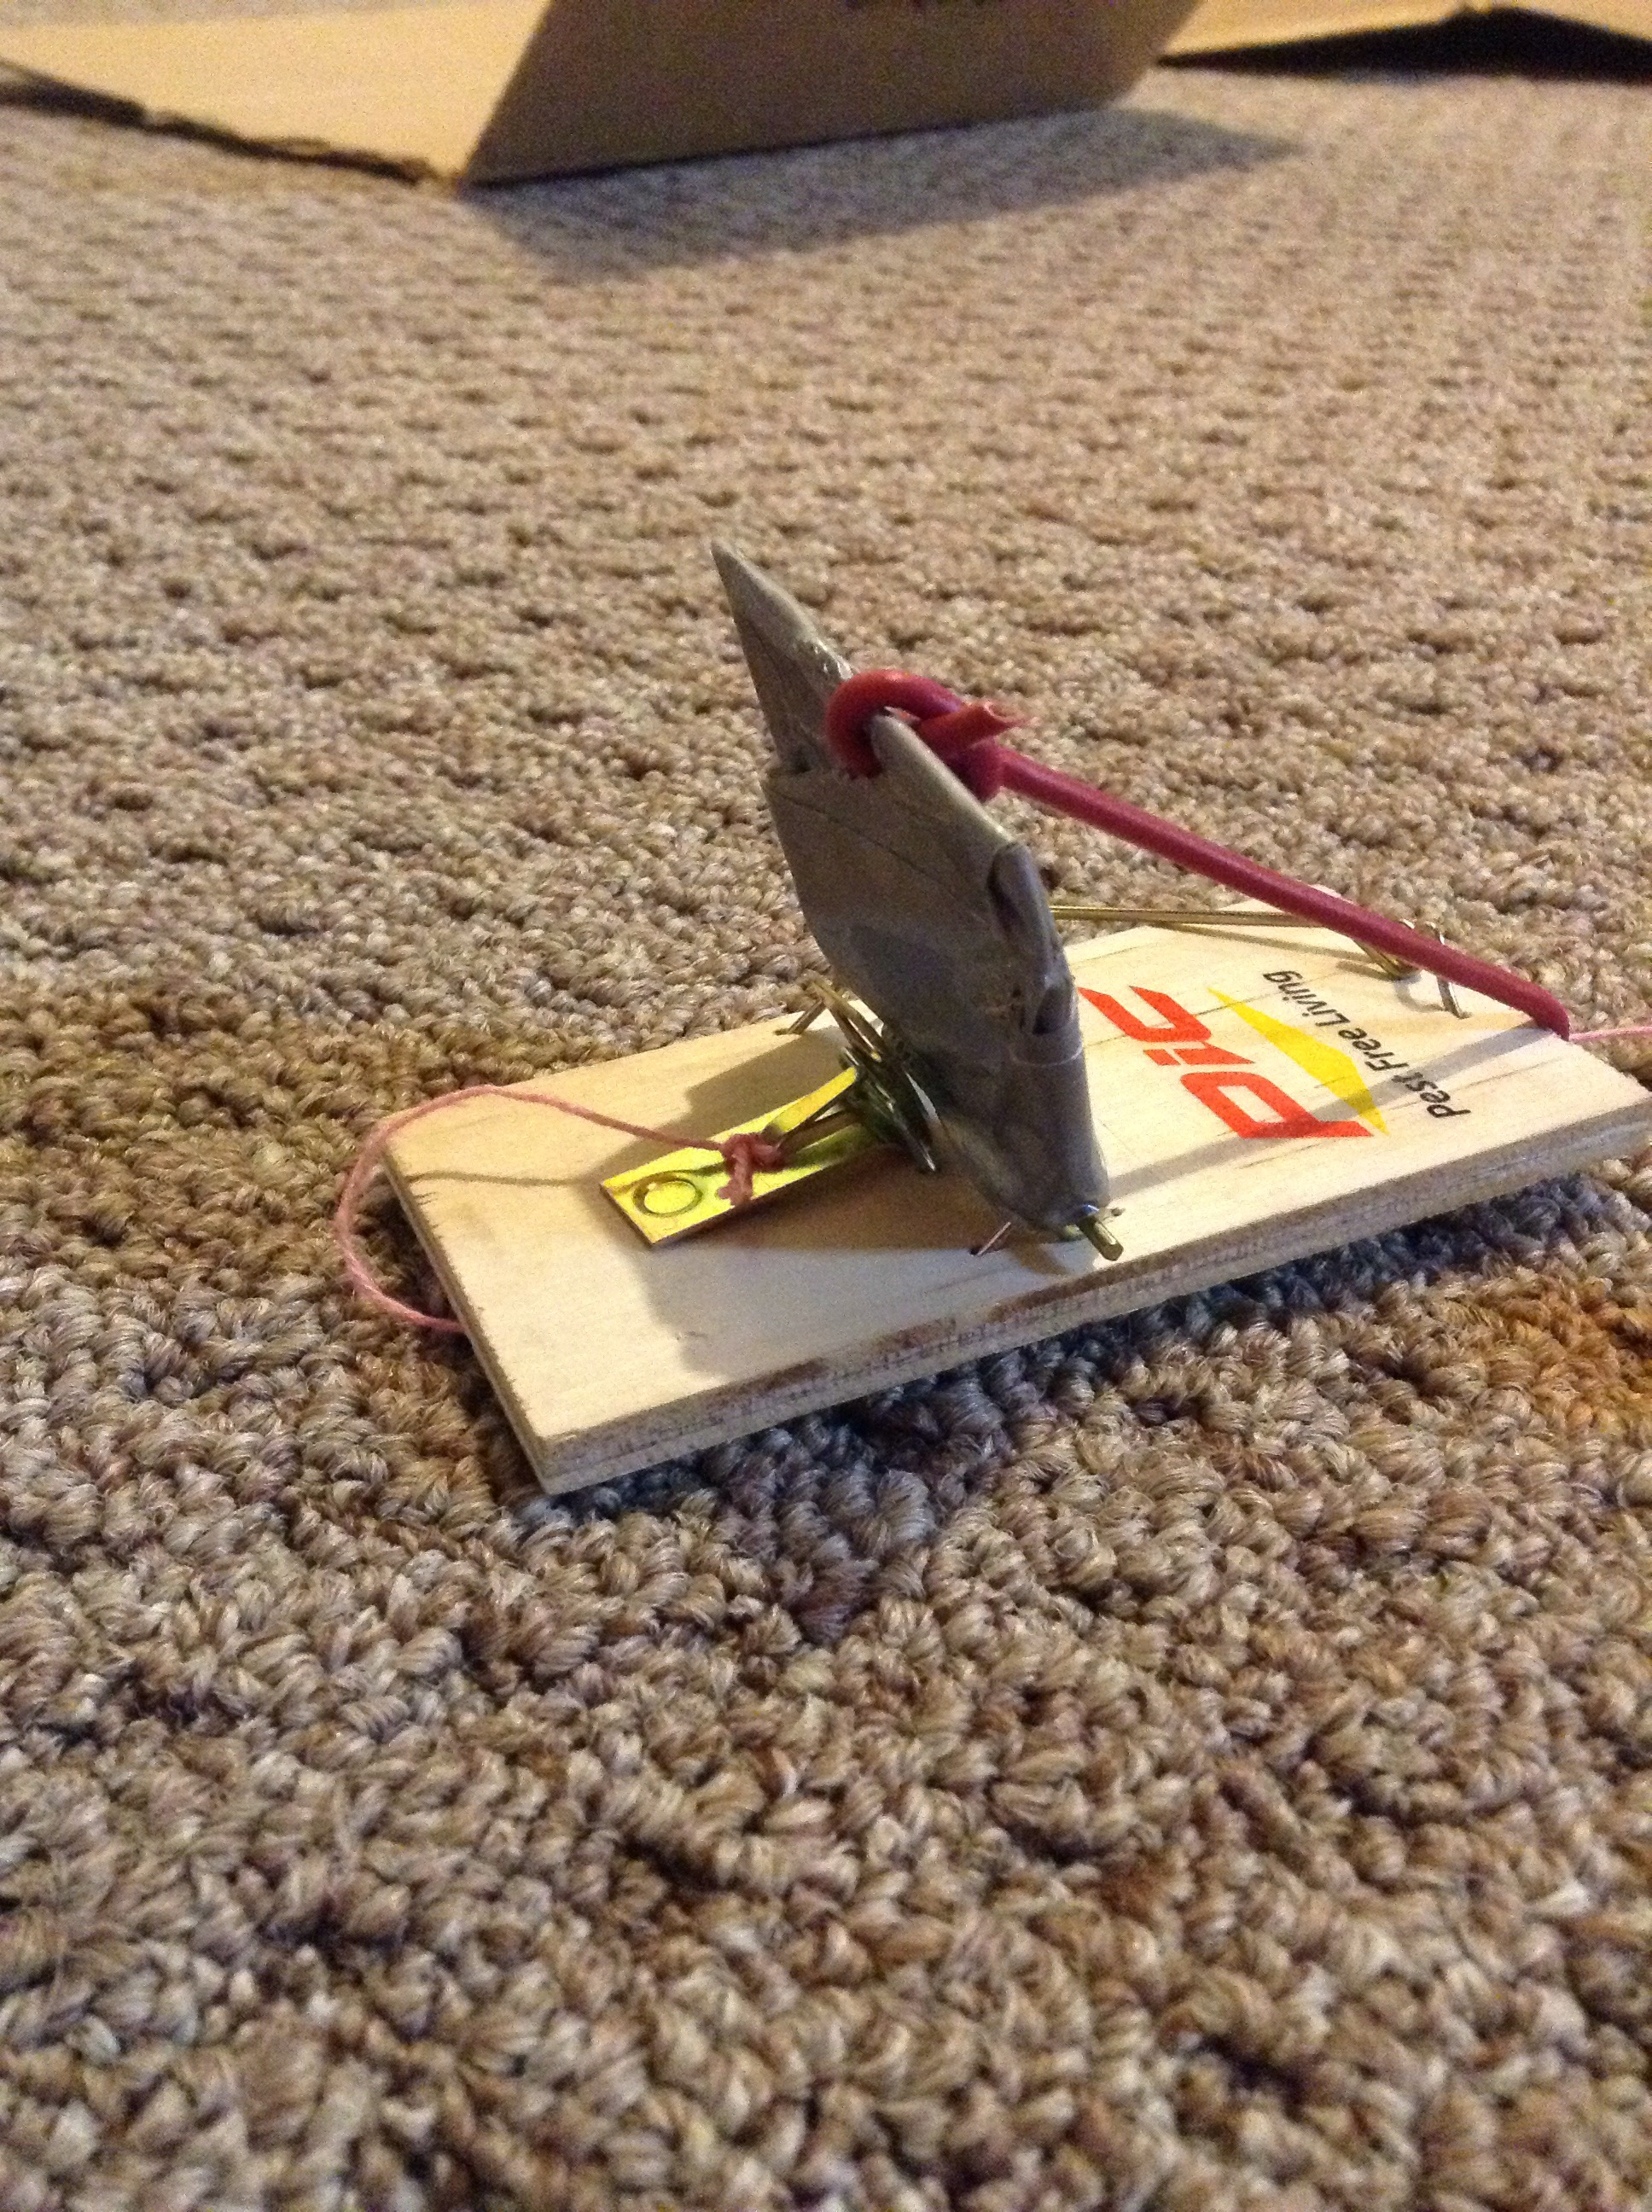 Catapult Mouse Trap